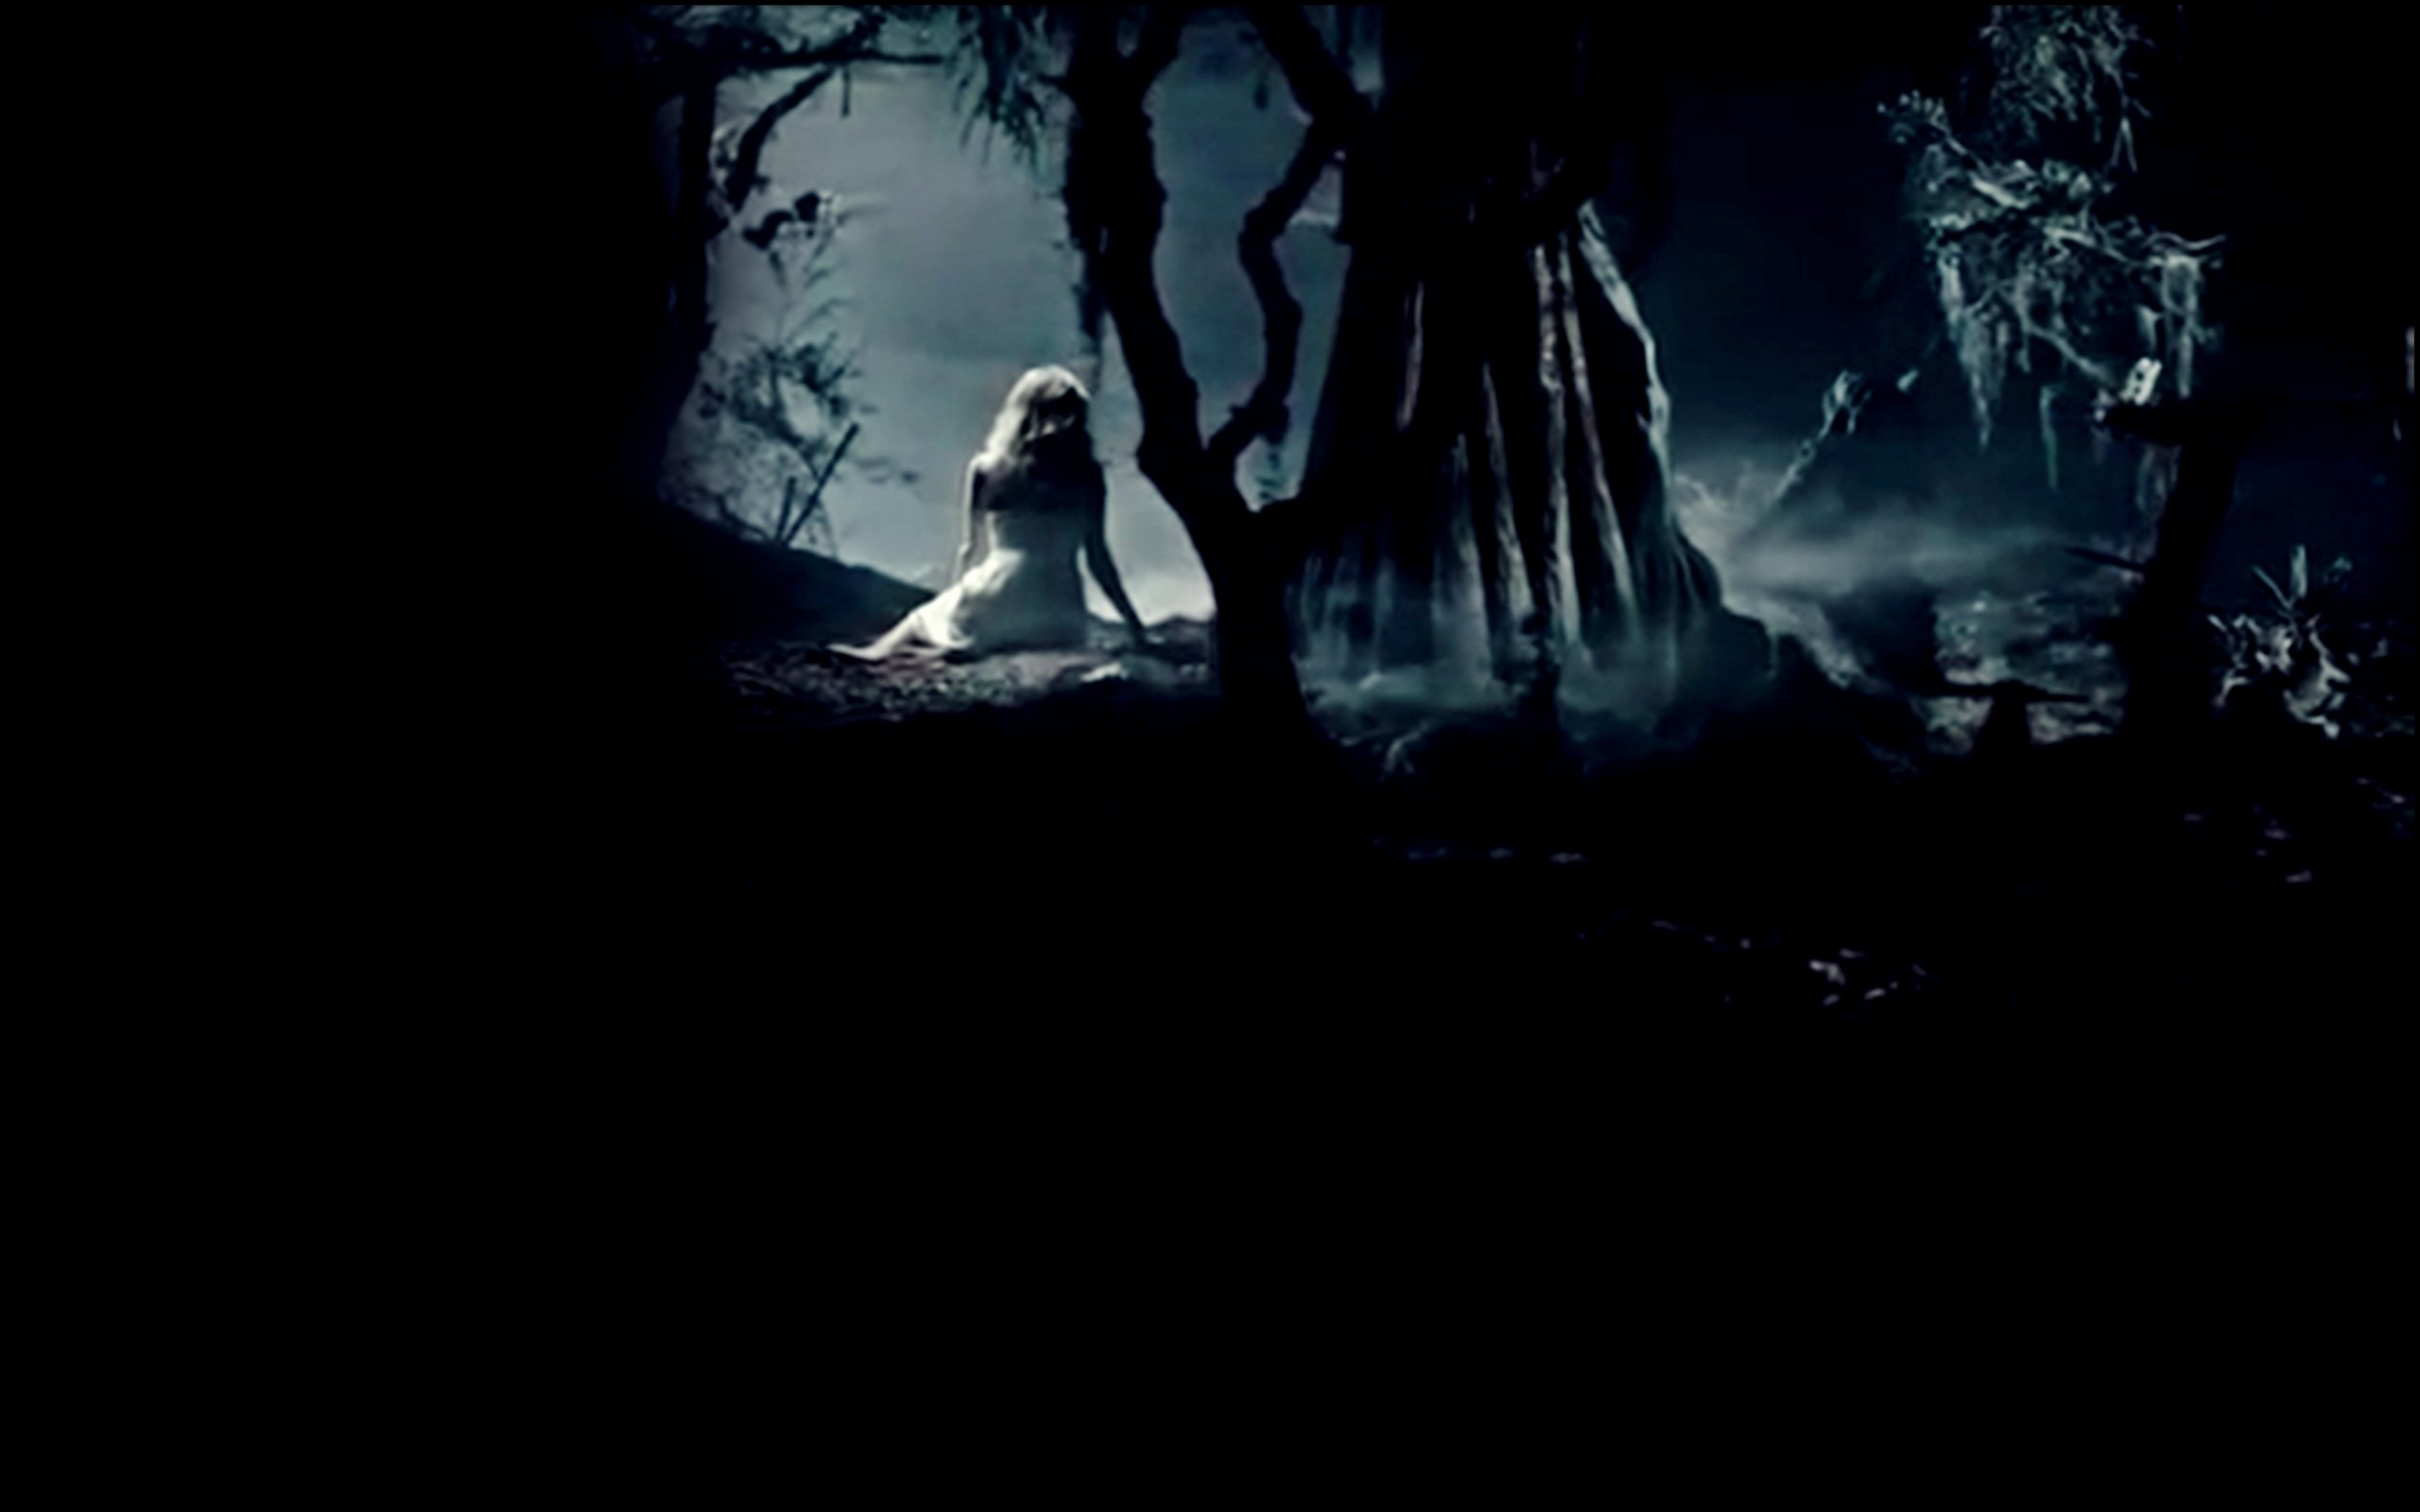 A Collection Of Dark Mysterious Hd Fantasy Wallpapers: TRUE BLOOD Drama Fantasy Mystery Dark Horror Hbo